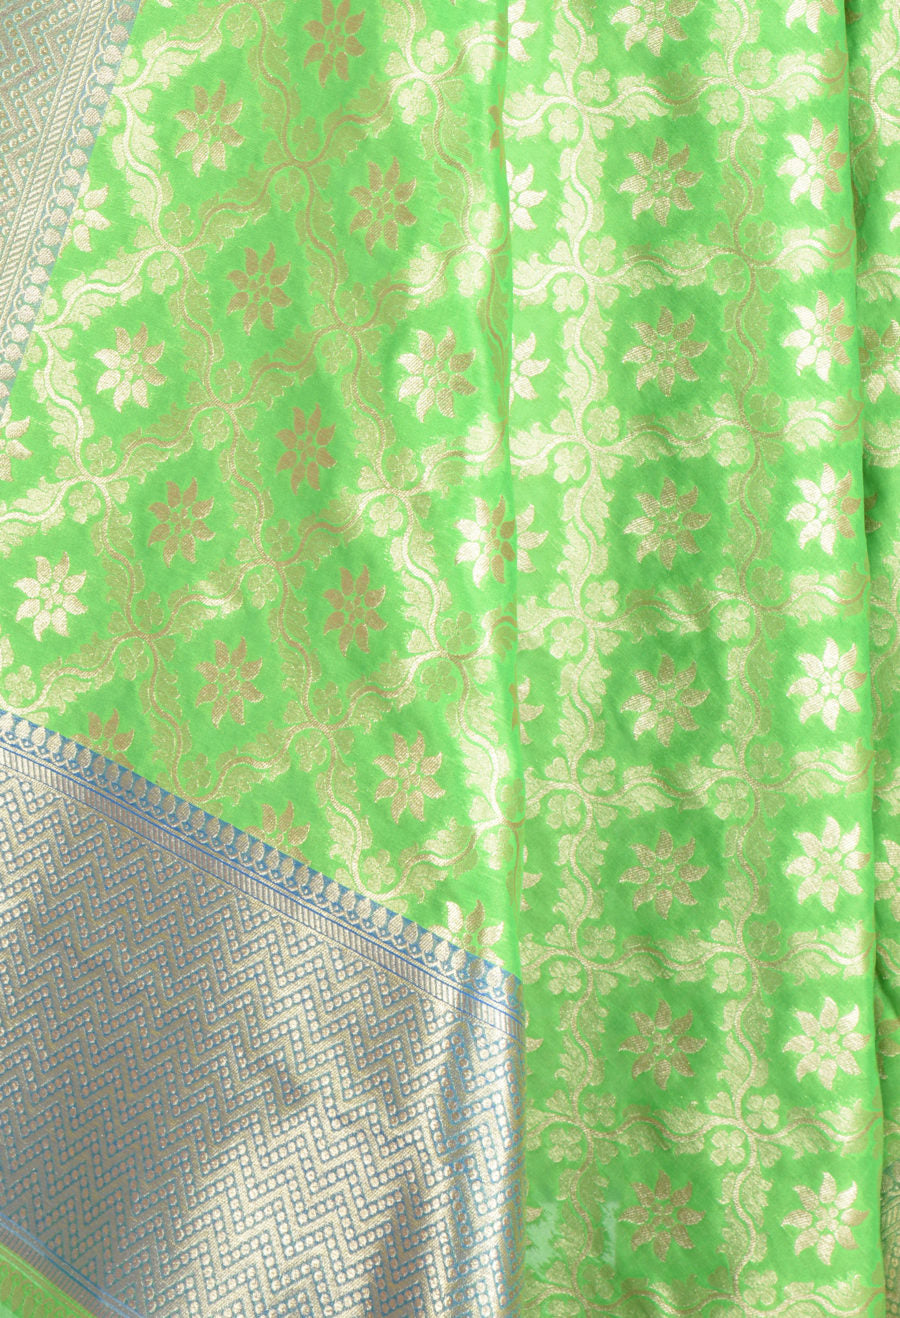 Parrot Green Art Silk Banarasi Dupatta with floral jaal and motifs (2) Closeup